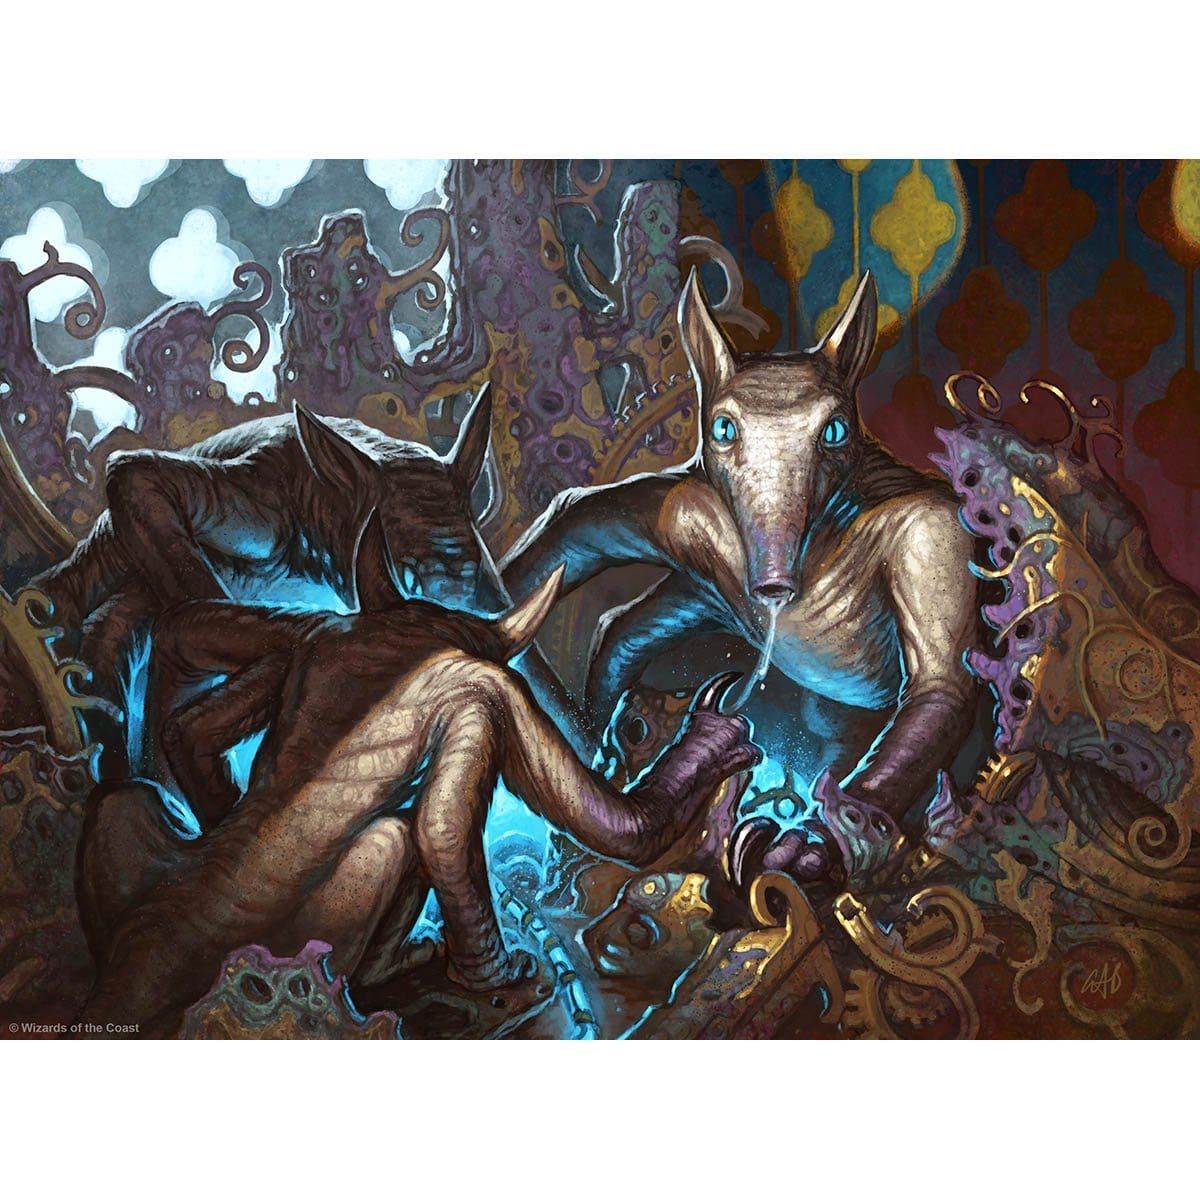 Salivating Gremlins Print - Print - Original Magic Art - Accessories for Magic the Gathering and other card games